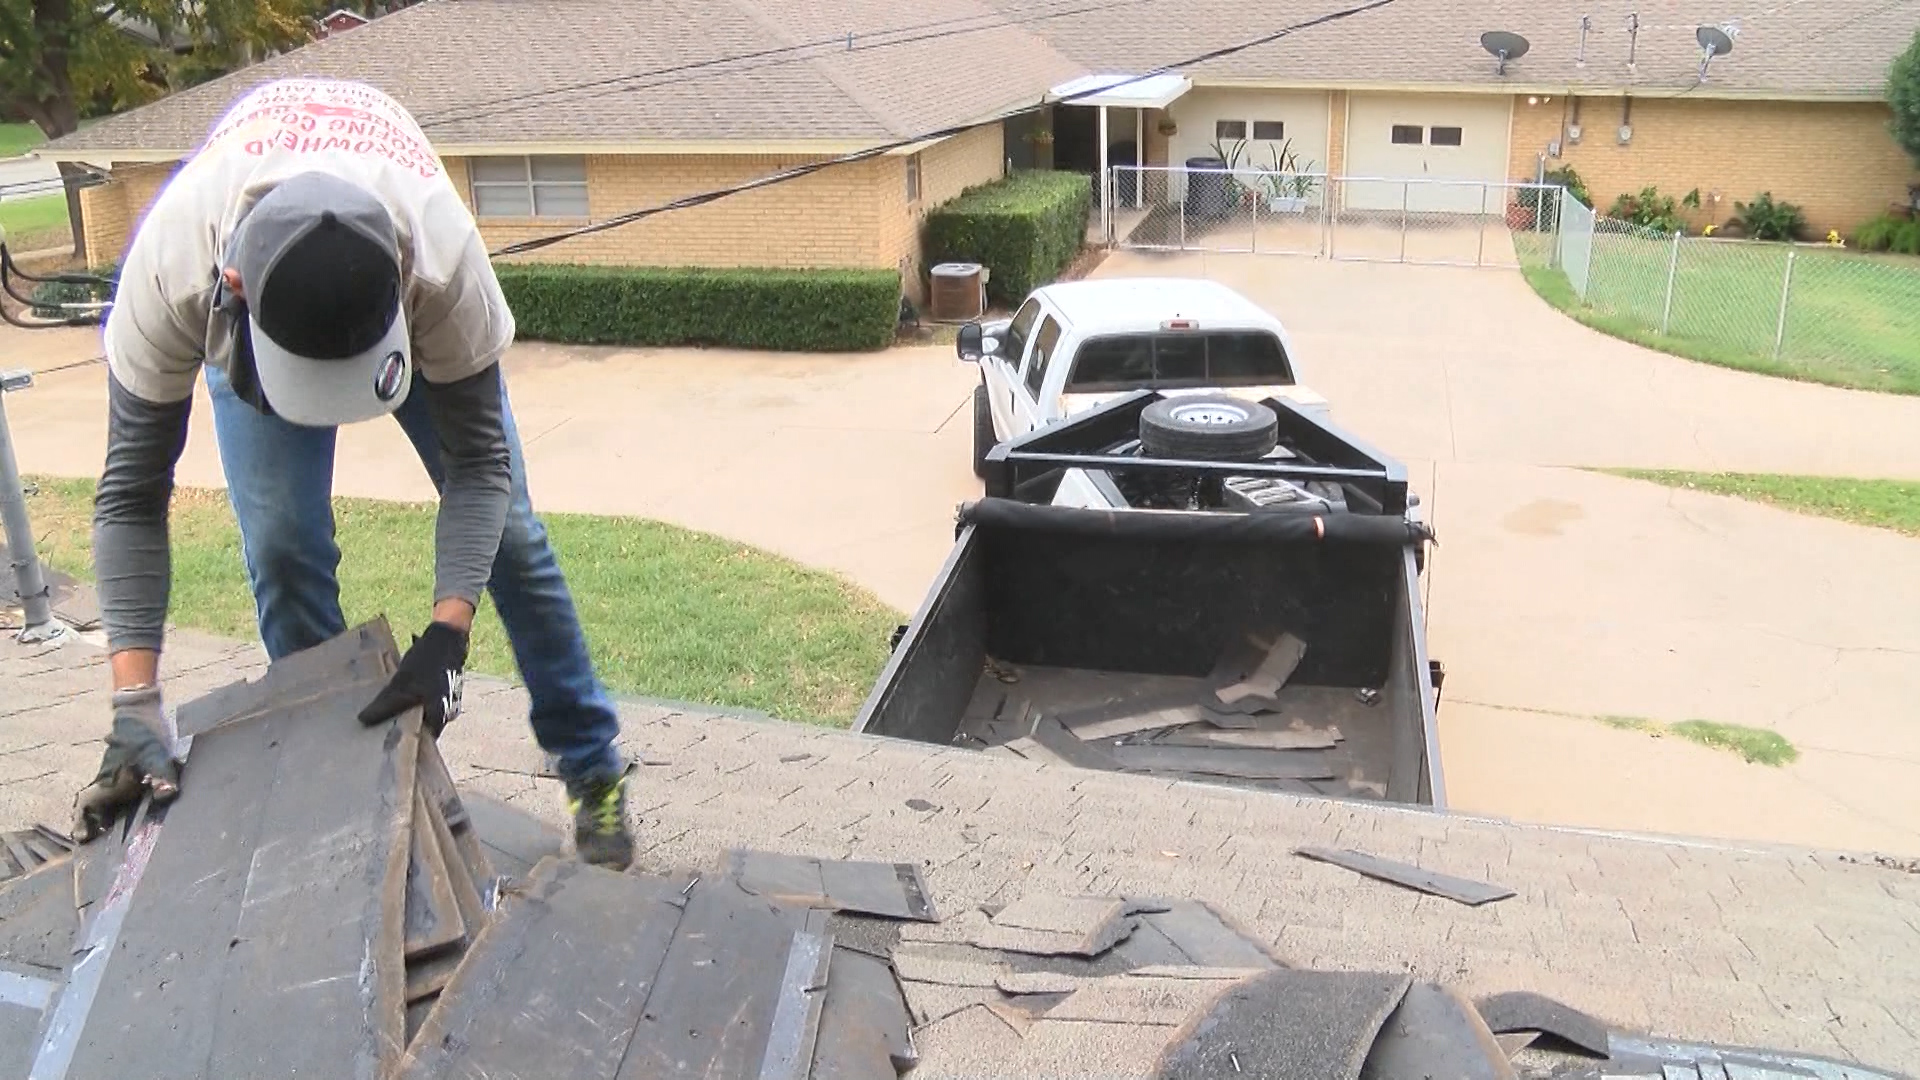 With us being in the middle of severe weather season, local roofers are warning Texomans not to take scamming baits.